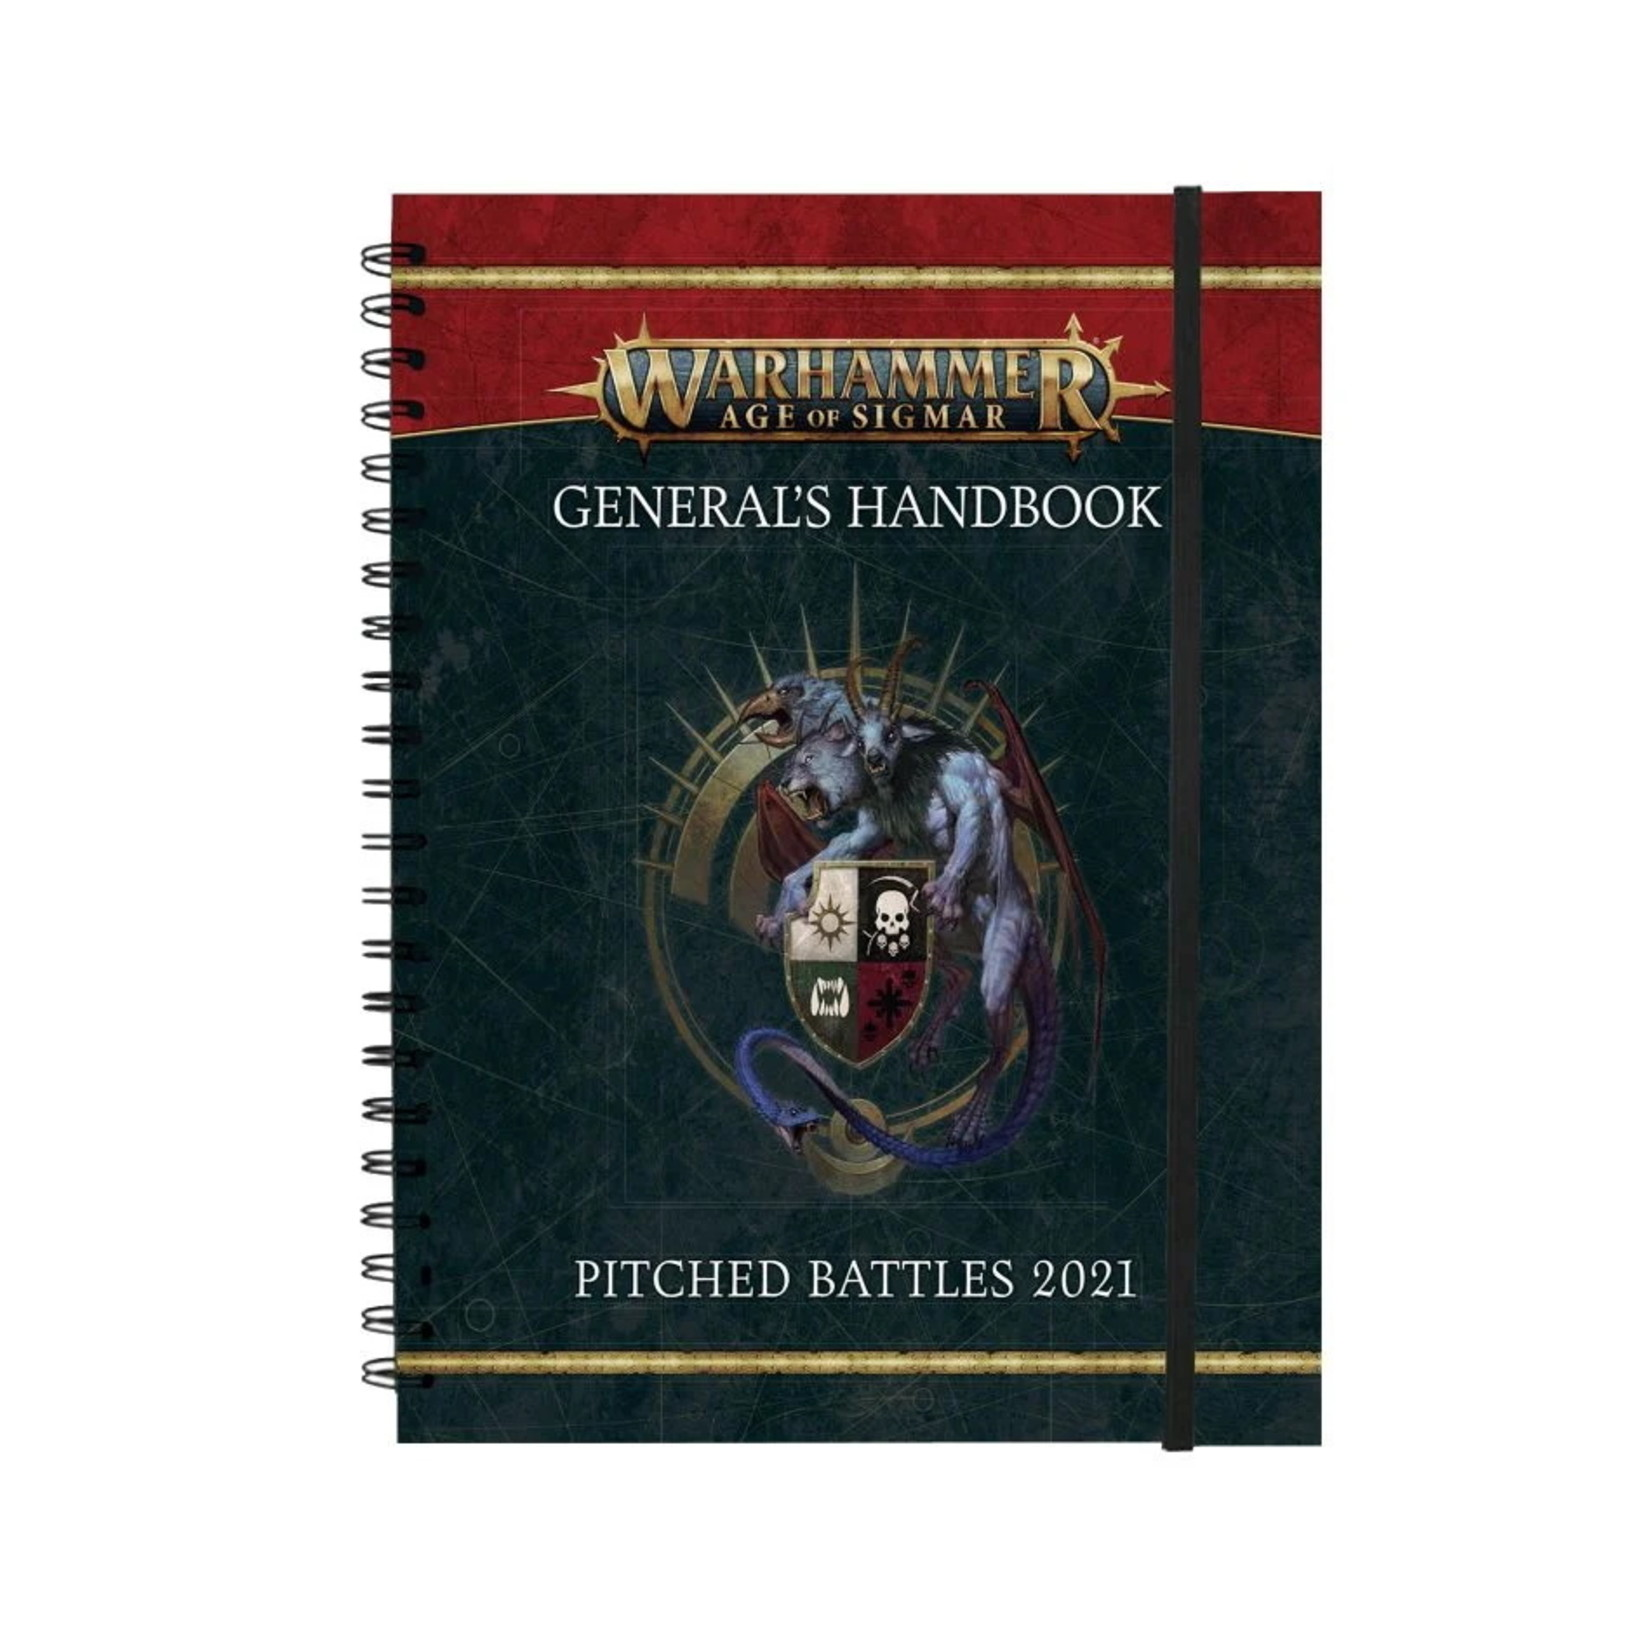 Games Workshop Warhammer Age of Sigmar General's Handbook Pitched Battles 2021 and Pitched Battle Profiles